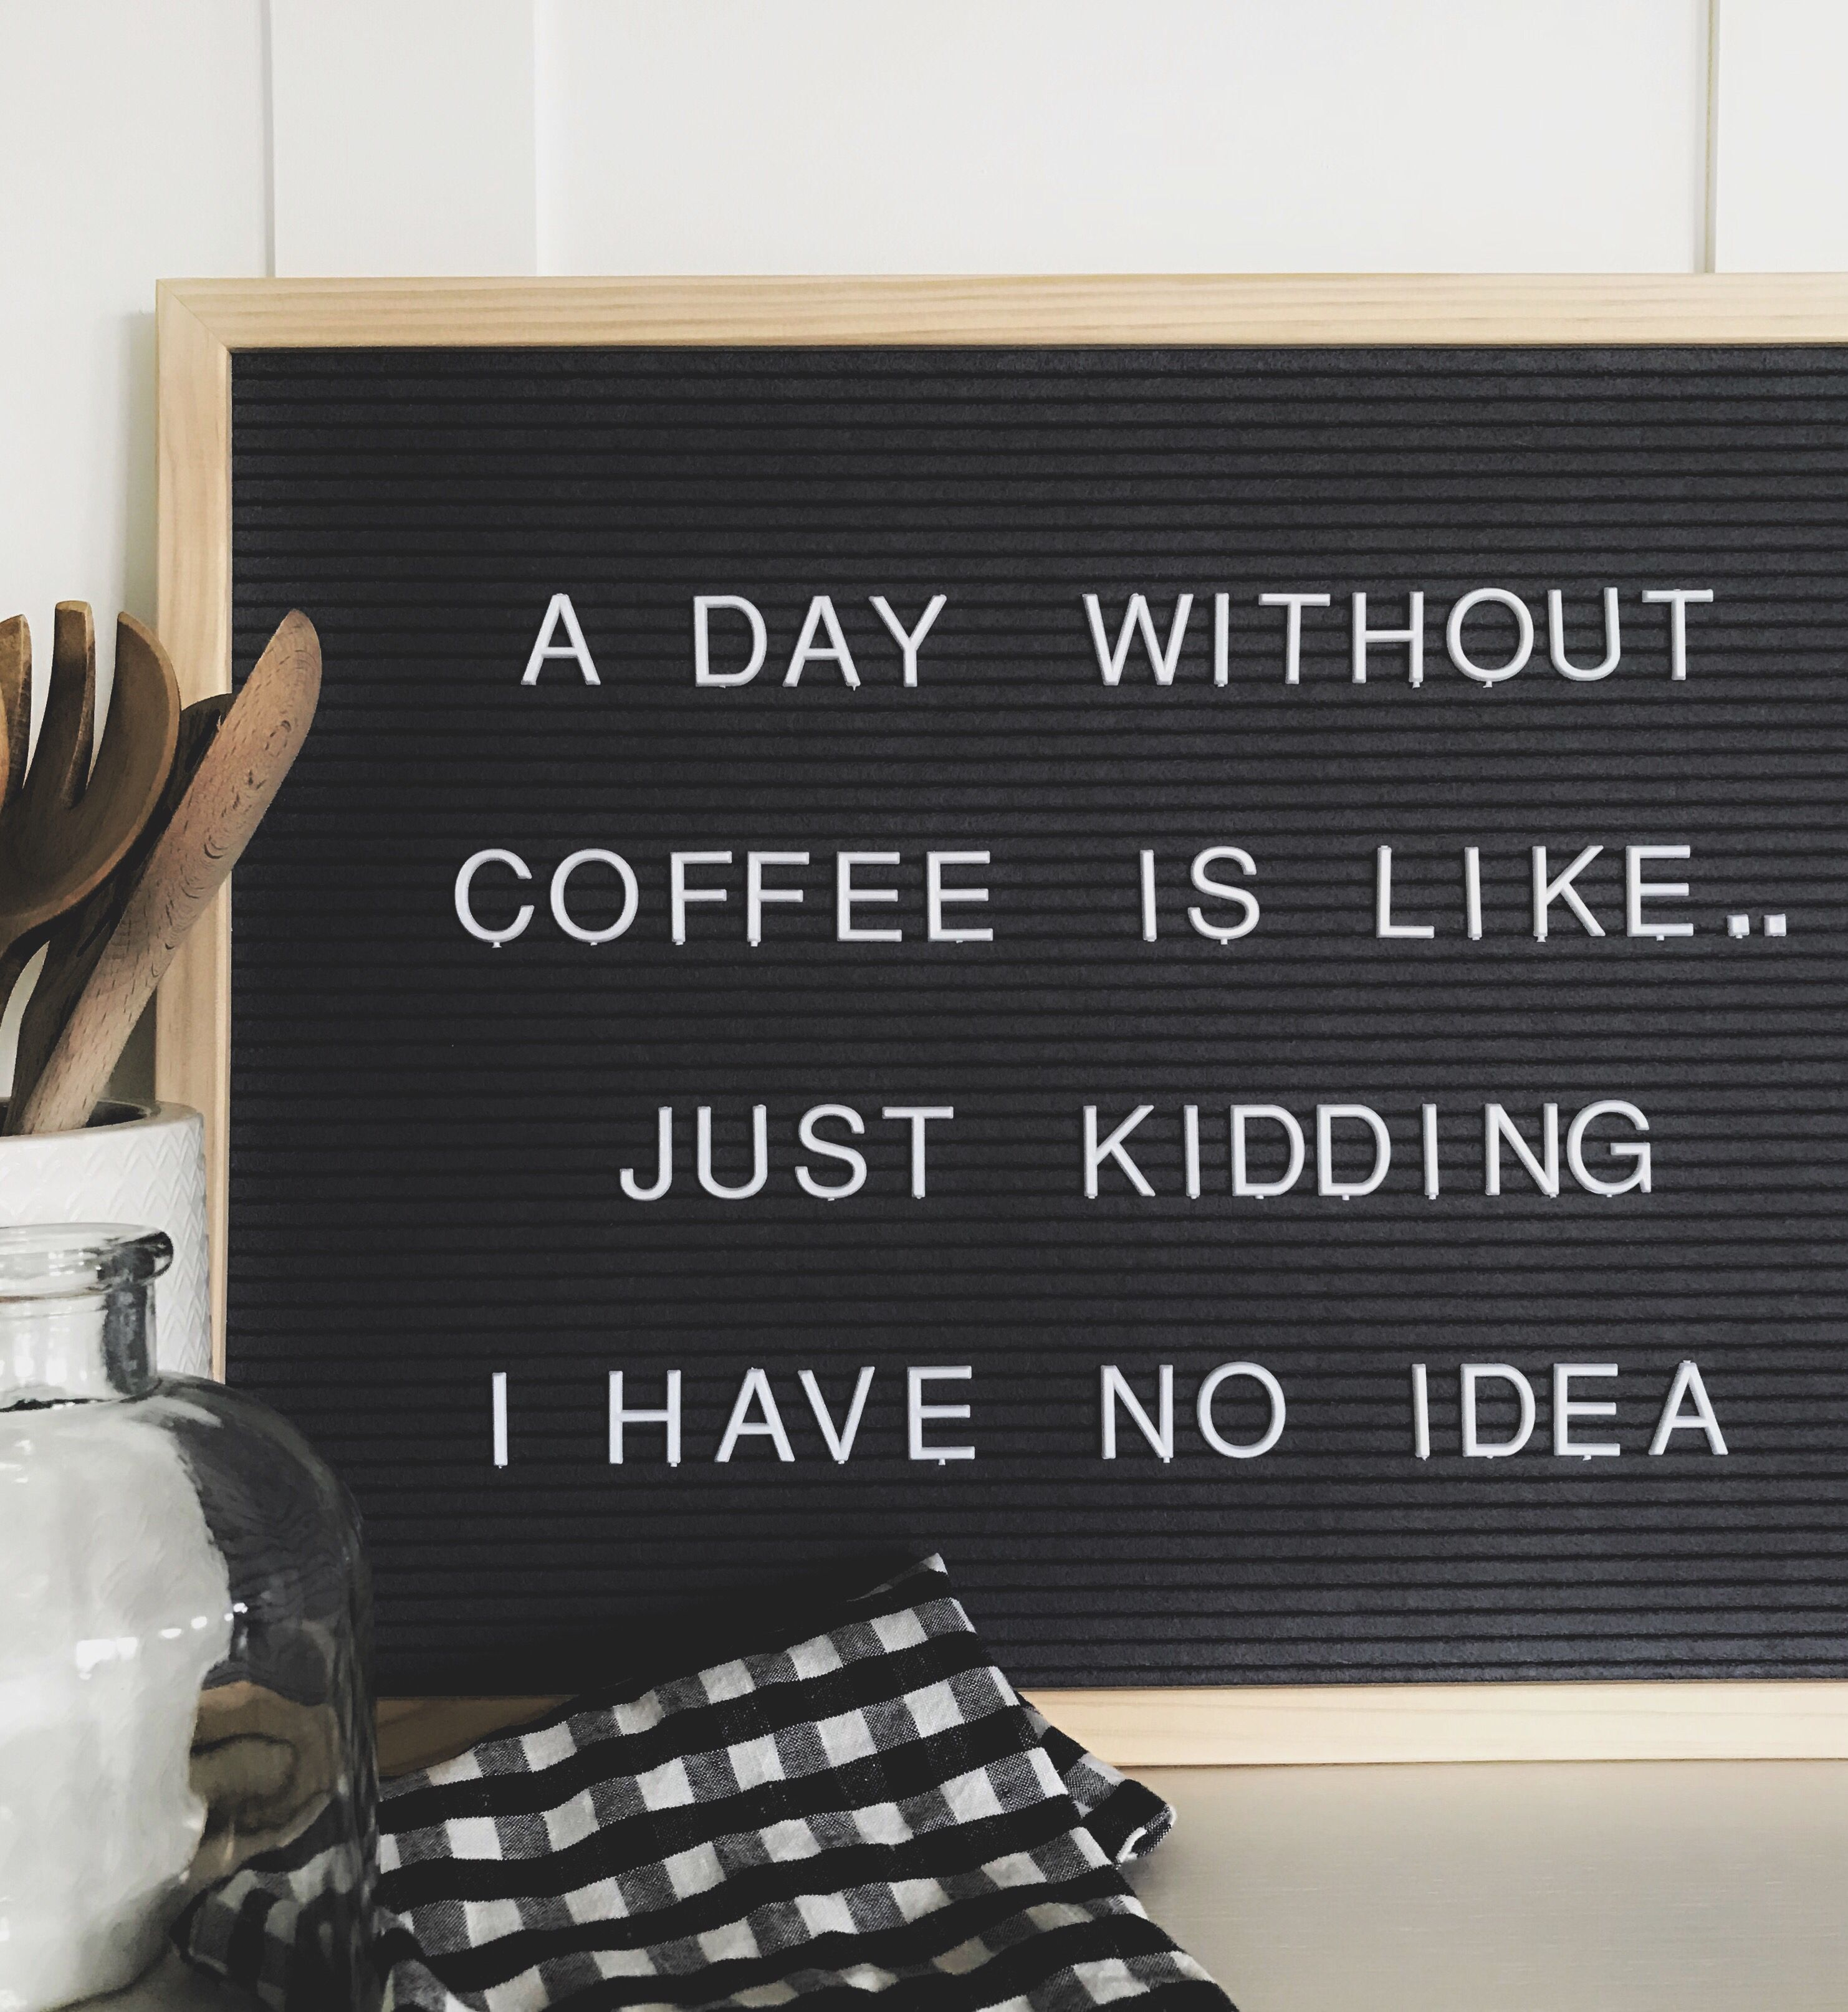 Letter Board Quotes Message Board Quotes Cute Coffee Quotes Coffee Quotes Funny